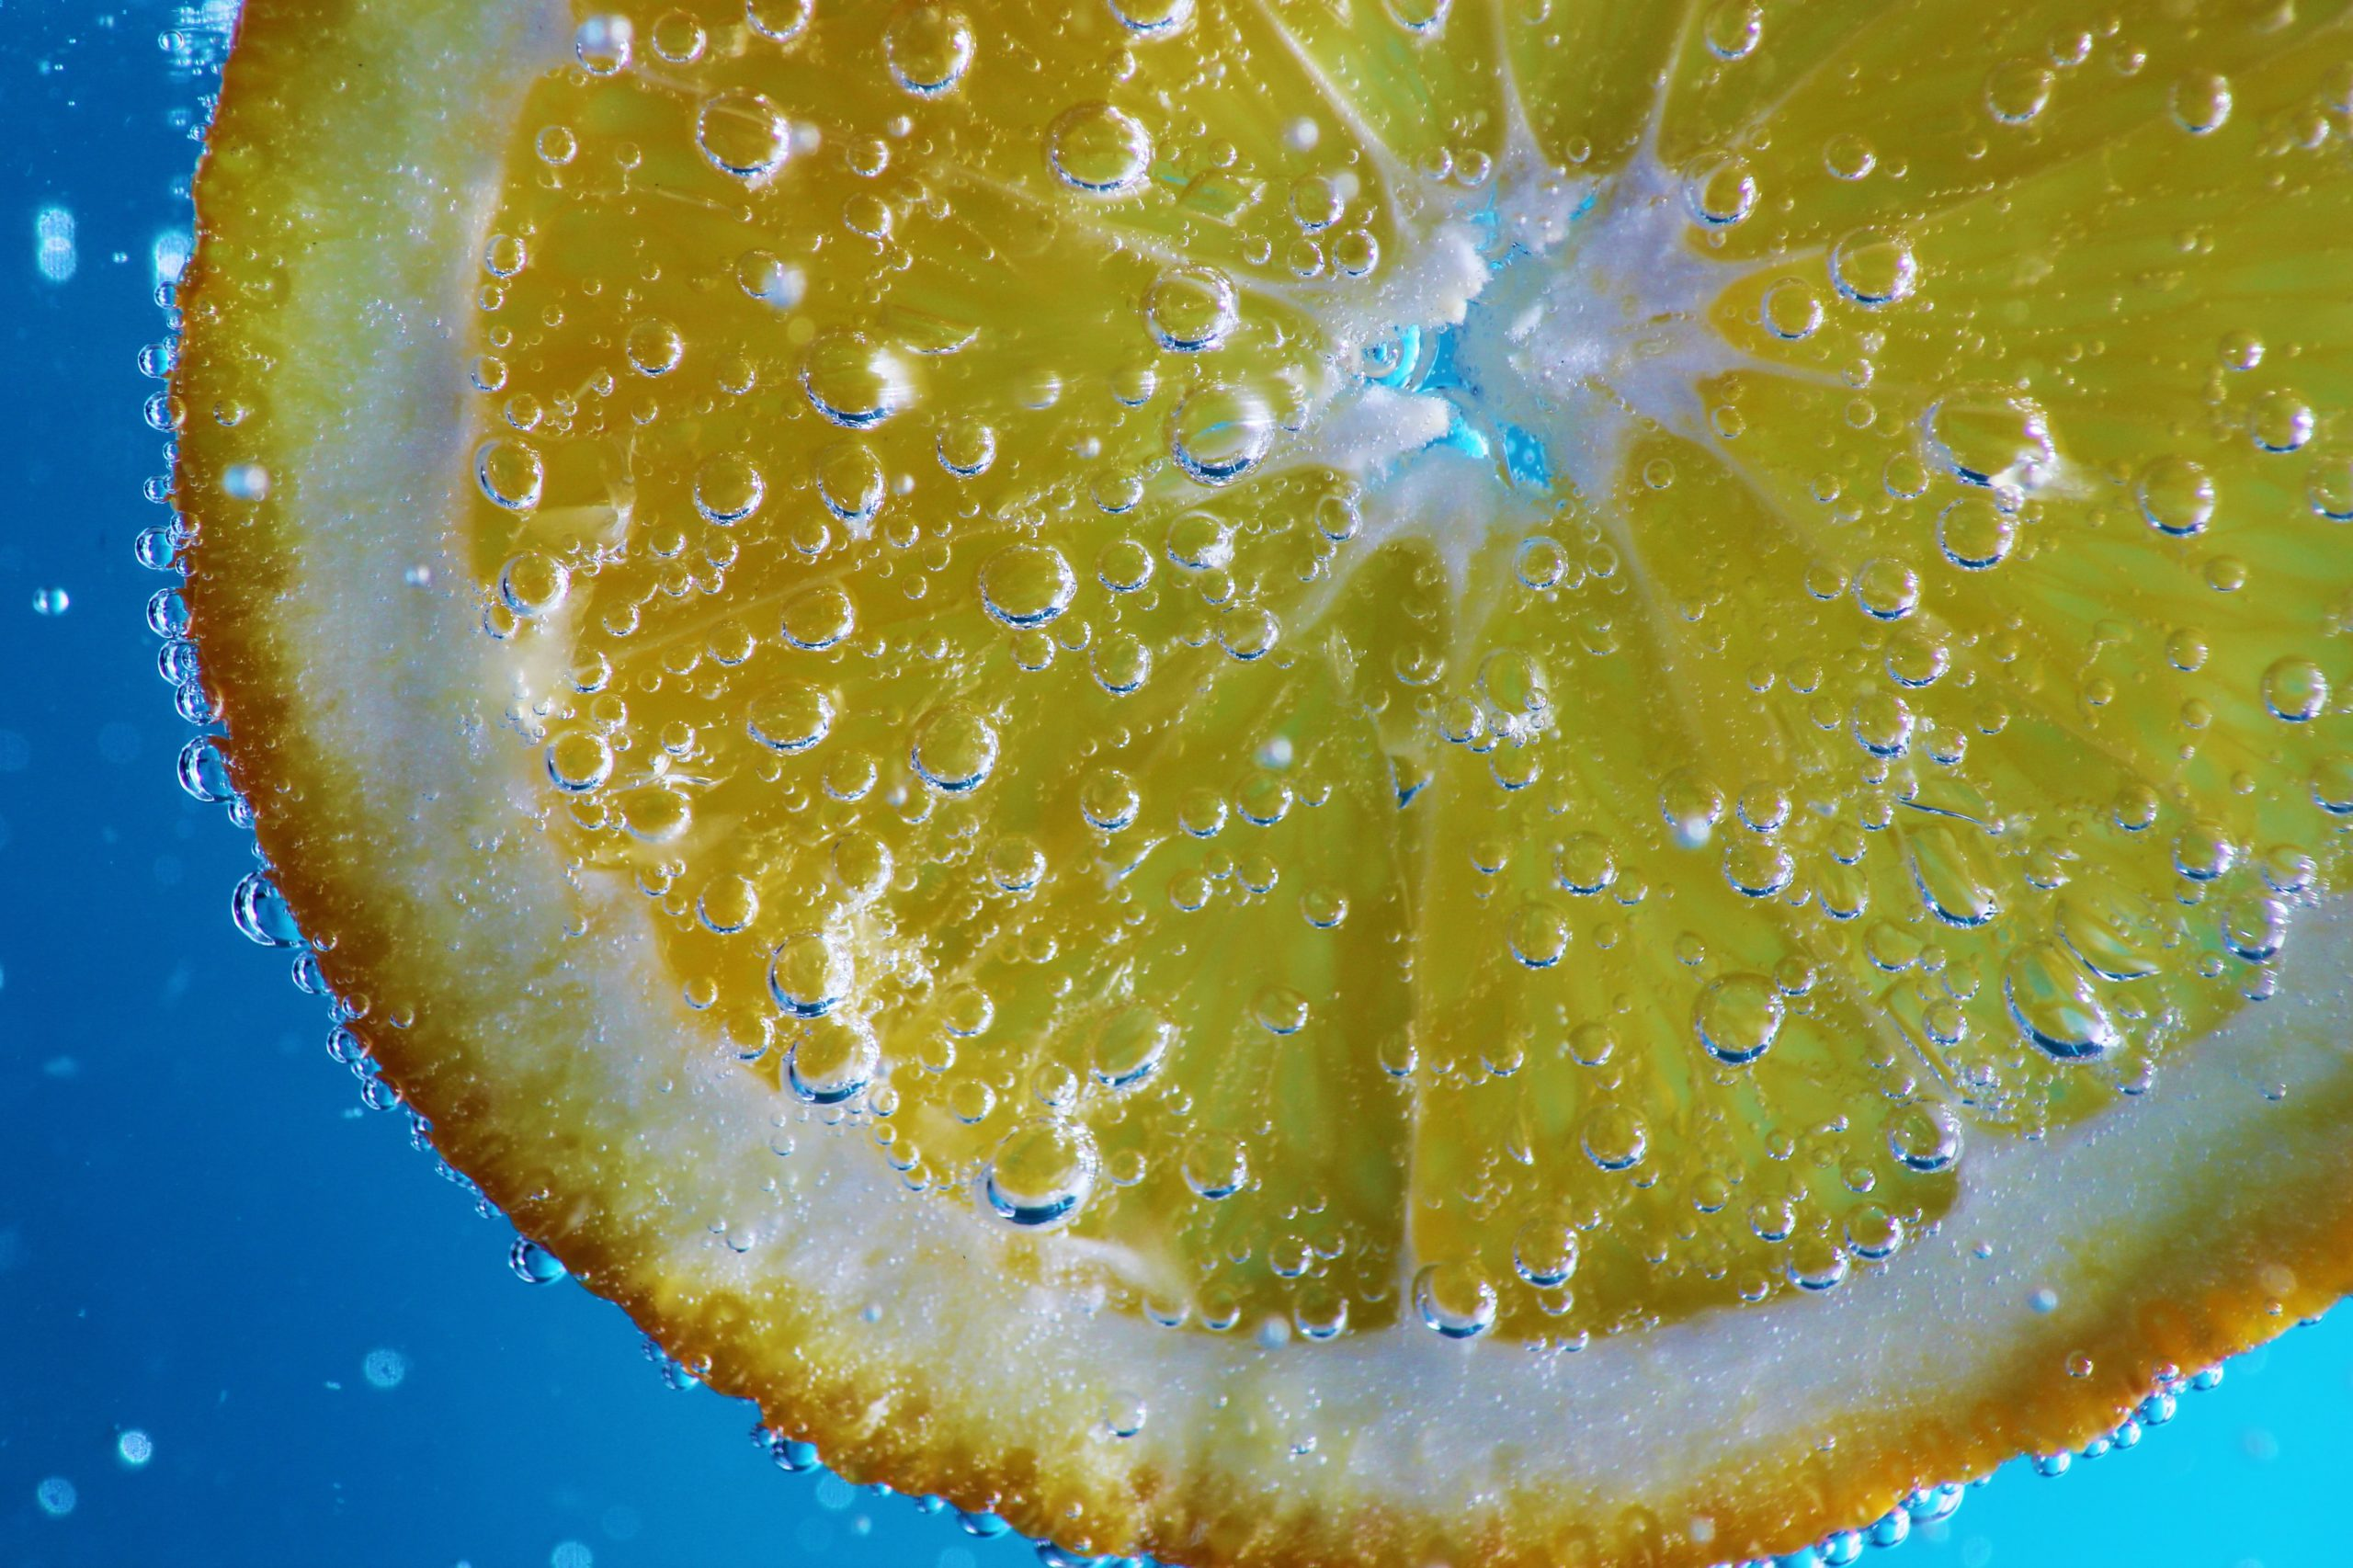 a close up of a lemon wedge in sparkling water